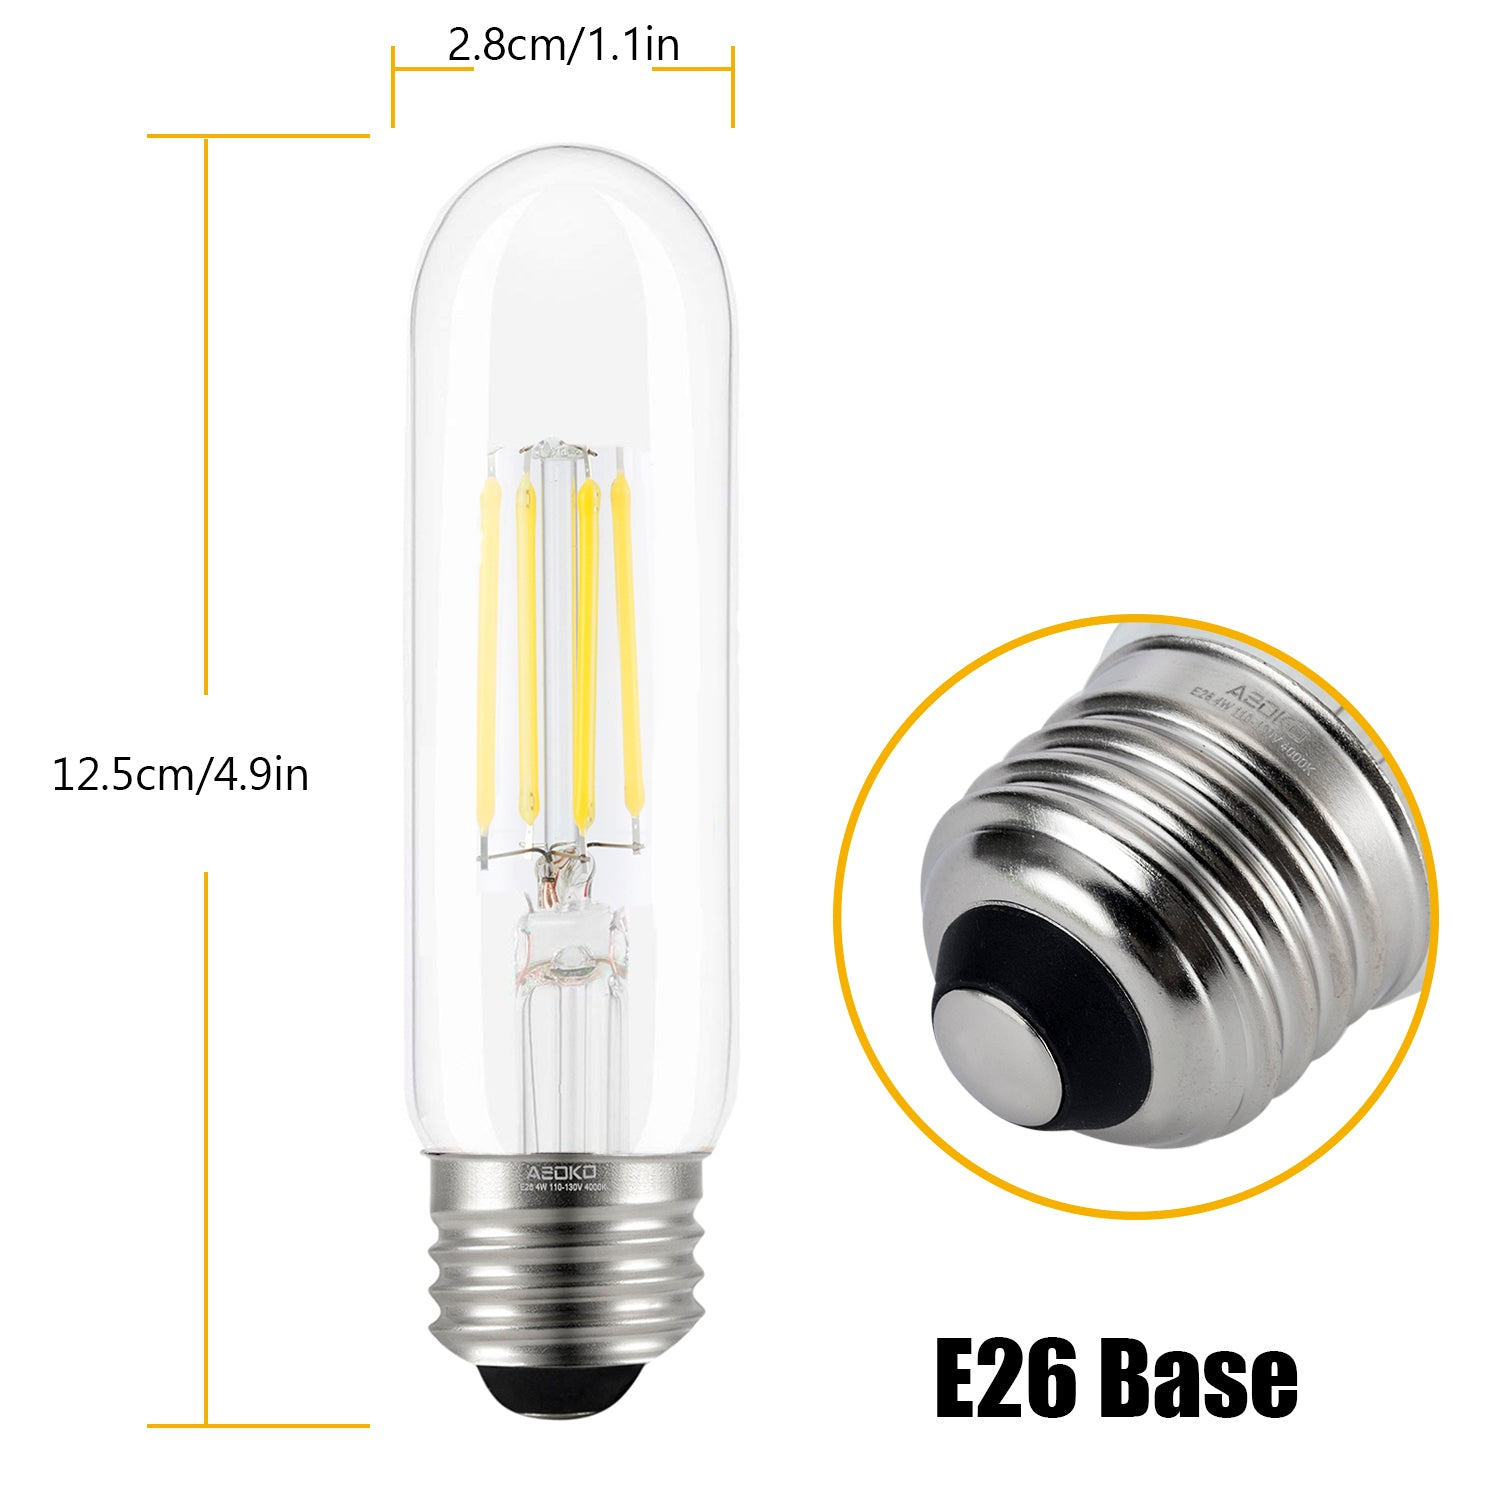 T10 LED Bulbs Daylight LED Tubular Edison Light Bulbs 4W Dimmable Tube Vintage Led Bulbs 40 Watt Equivalent,E26 Medium Base, LED Filament Retro Bulb for Desk Lamp, Pendant Lights(T10-4000K,3-Pack)